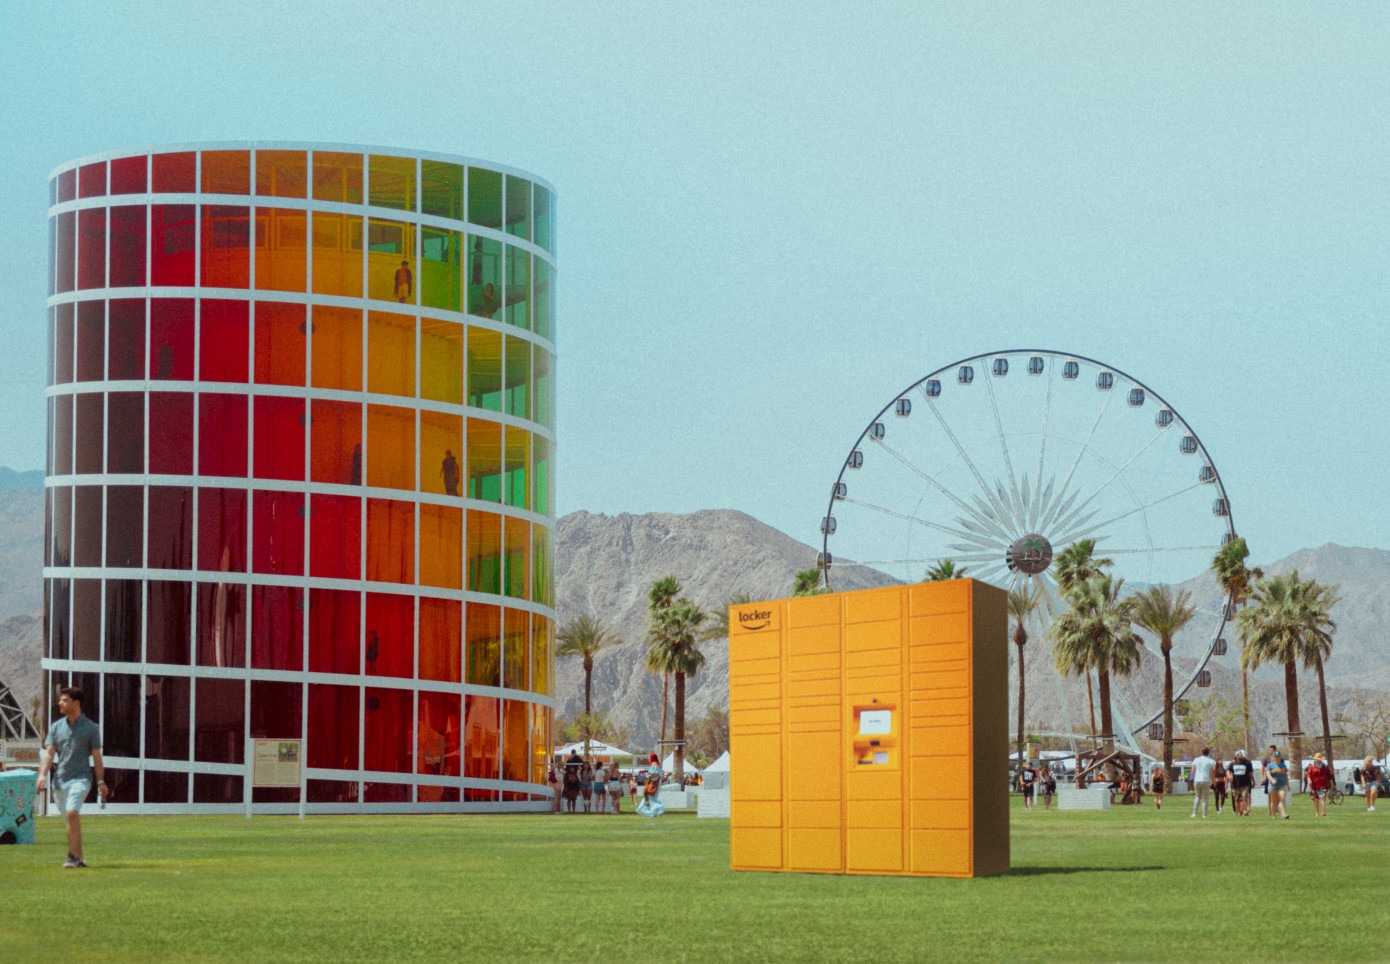 Amazon Brought Lockers to Coachella and it was Amazo...ing